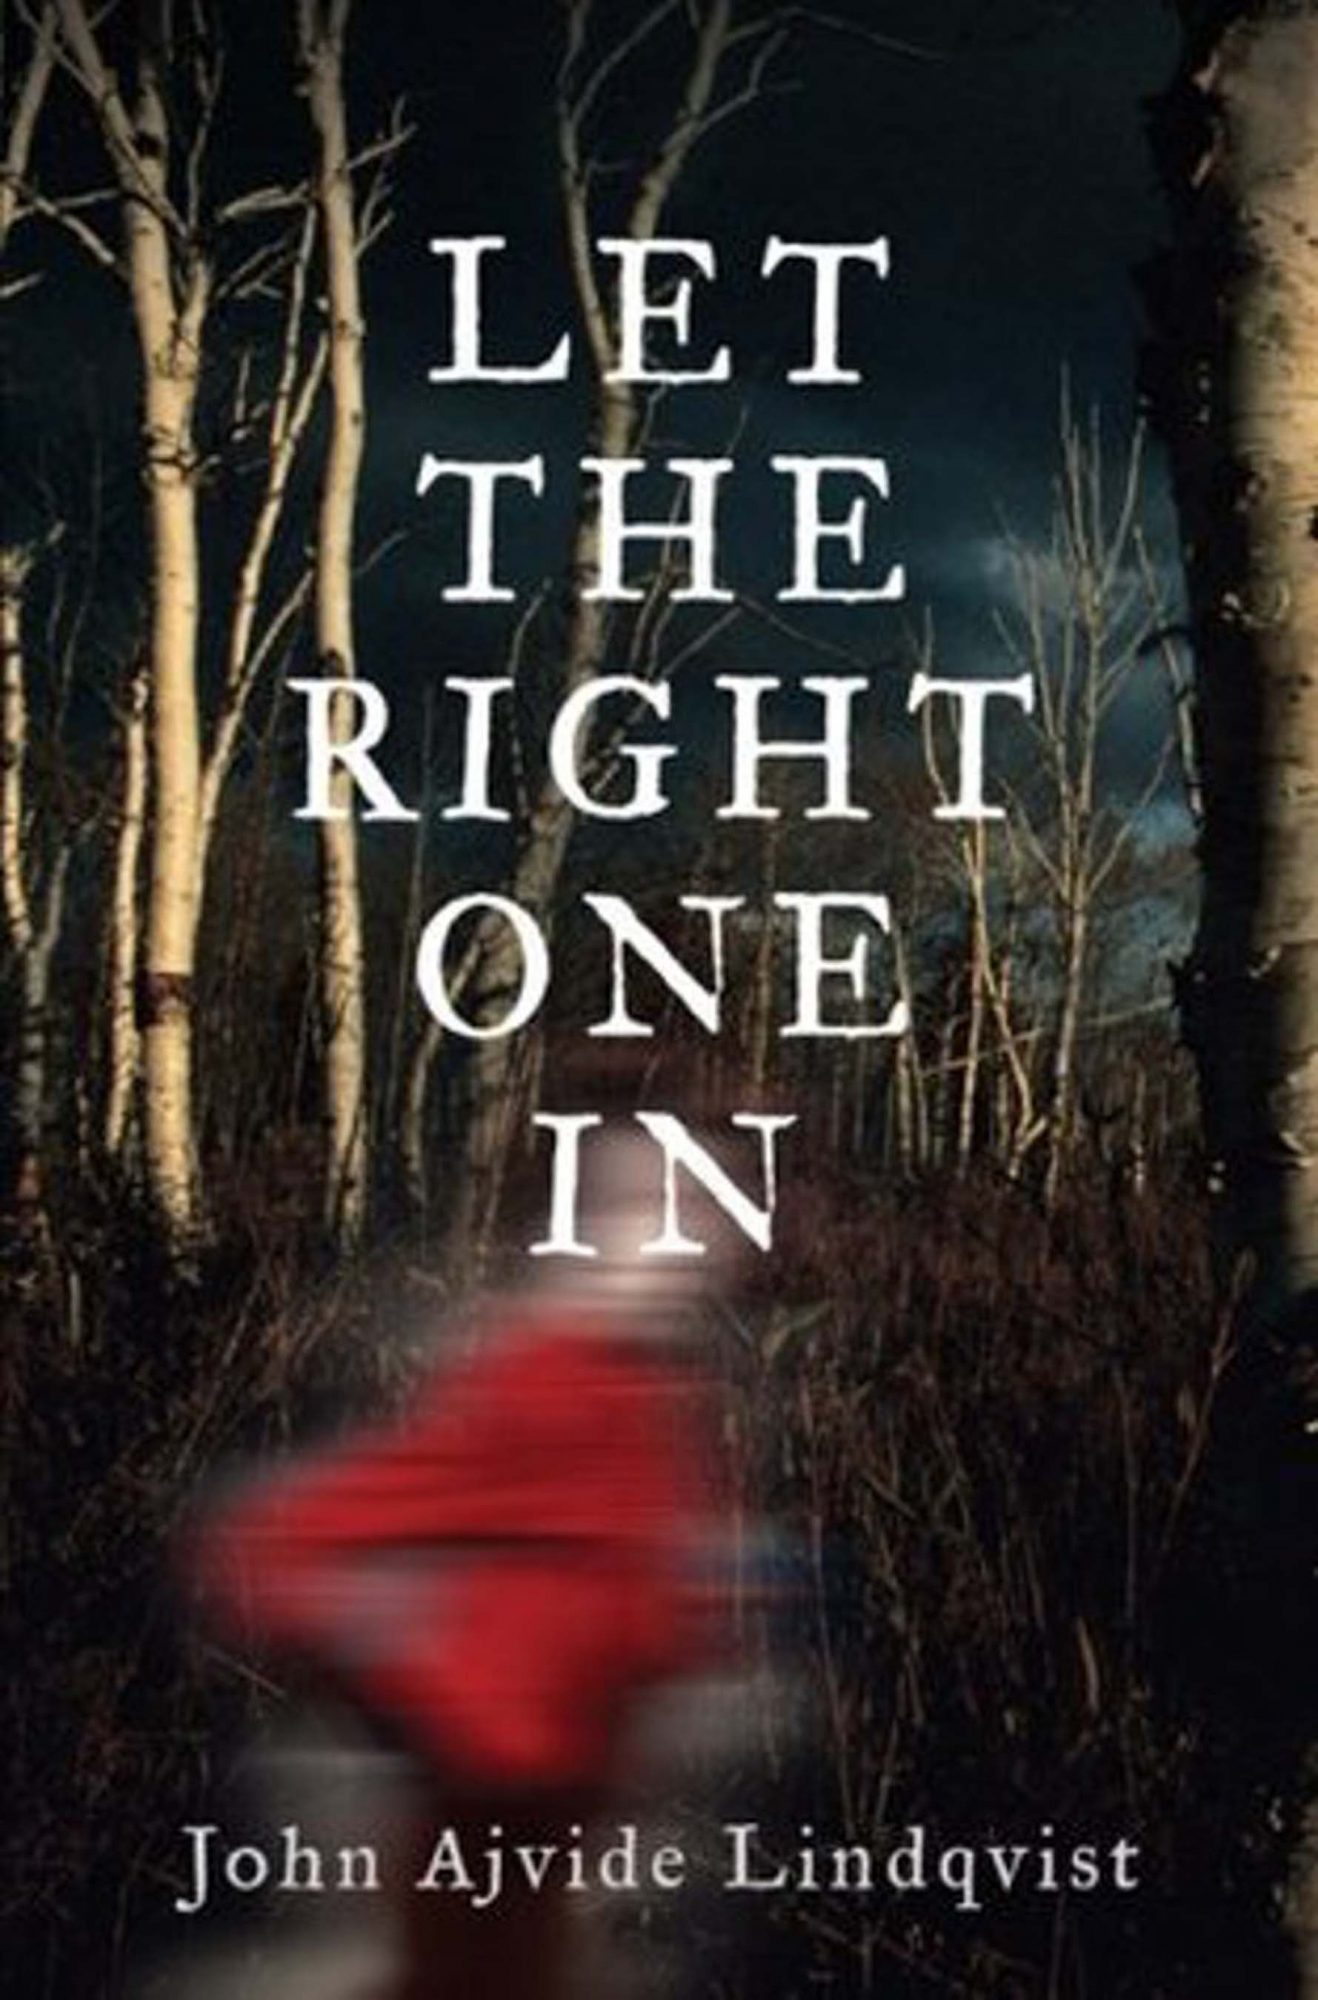 Let the Right One In by John Ajvide Lindqvist (2004)